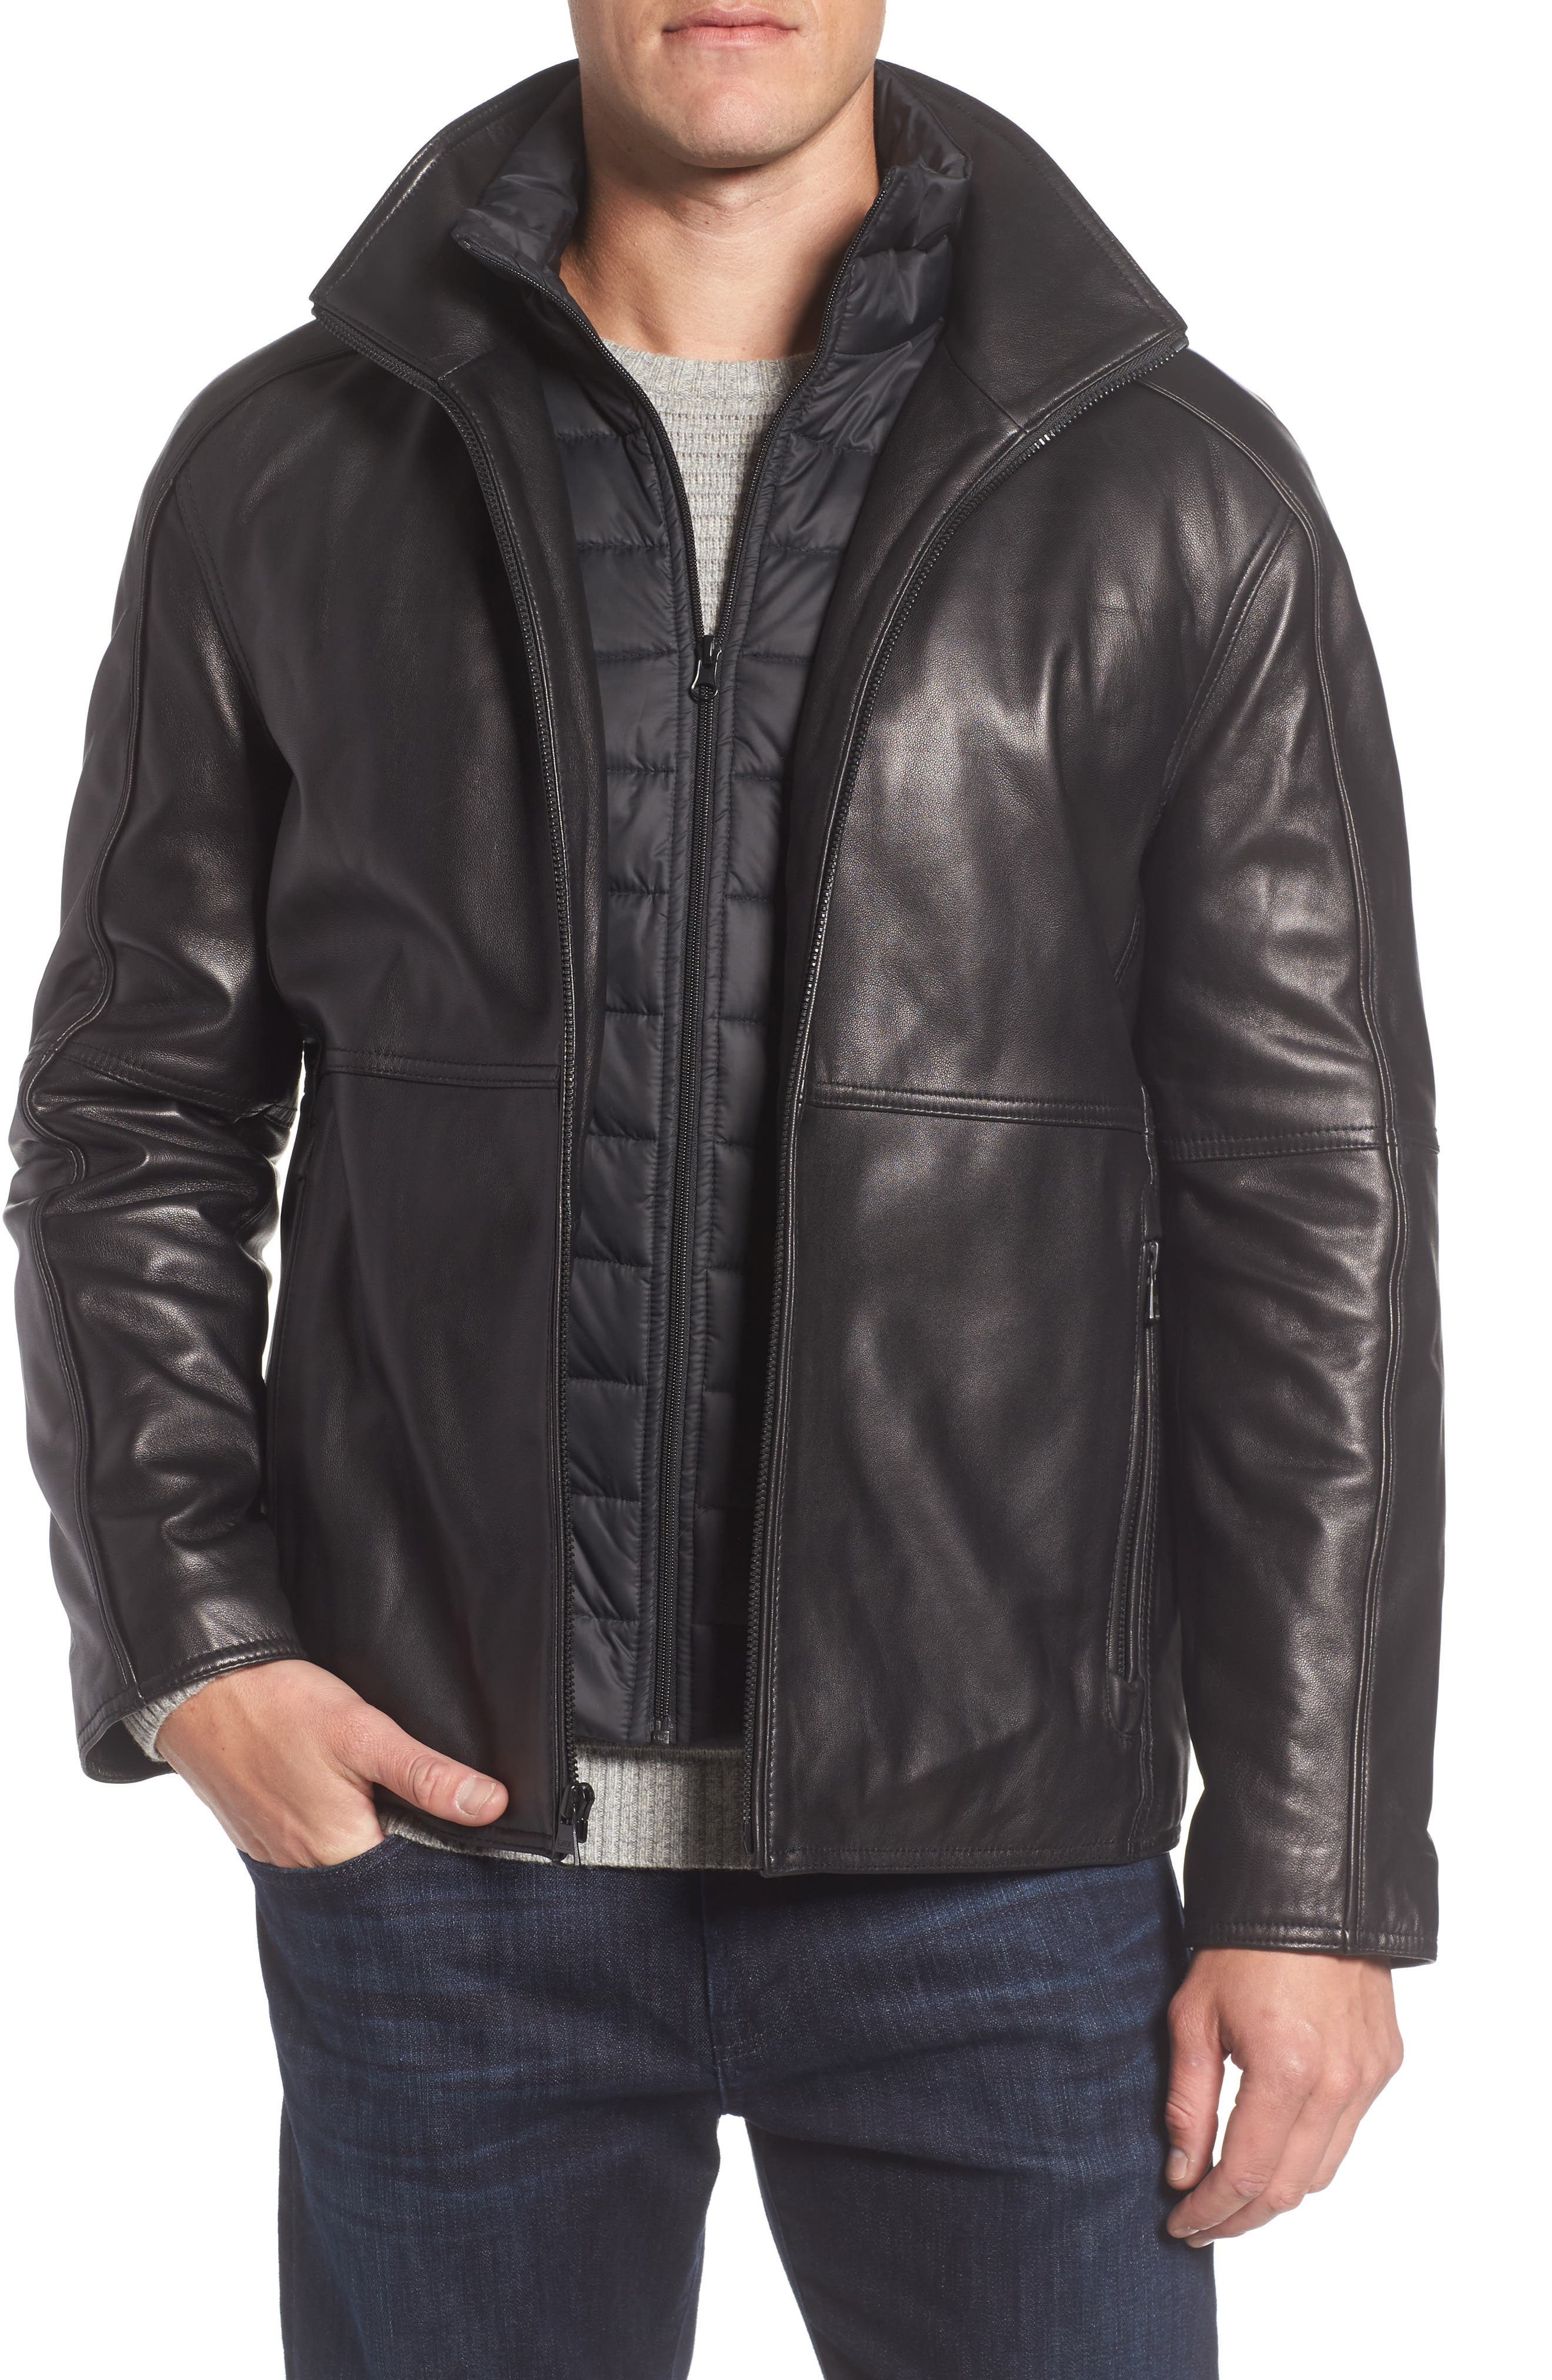 Leather Jacket with Quilted Insert,                         Main,                         color, Black